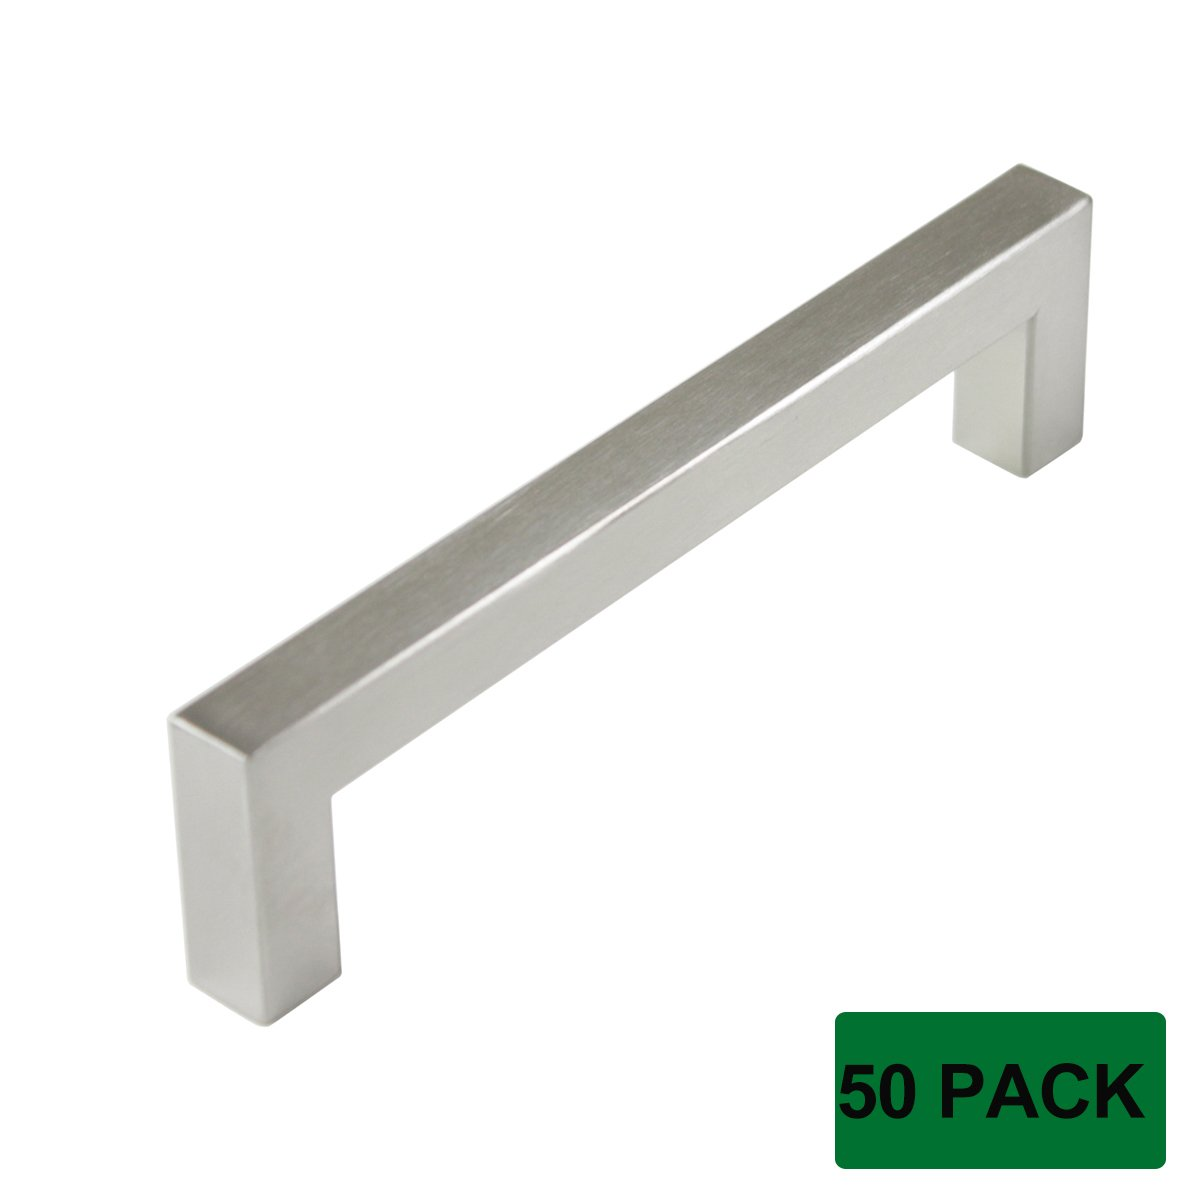 Probrico Stainless Steel Modern Kitchen Cupboard Handles 5 Inch Holes Centers Cabinet Drawer Pulls Brushed Nickel 5.5 Inch Total Length 50 Pack